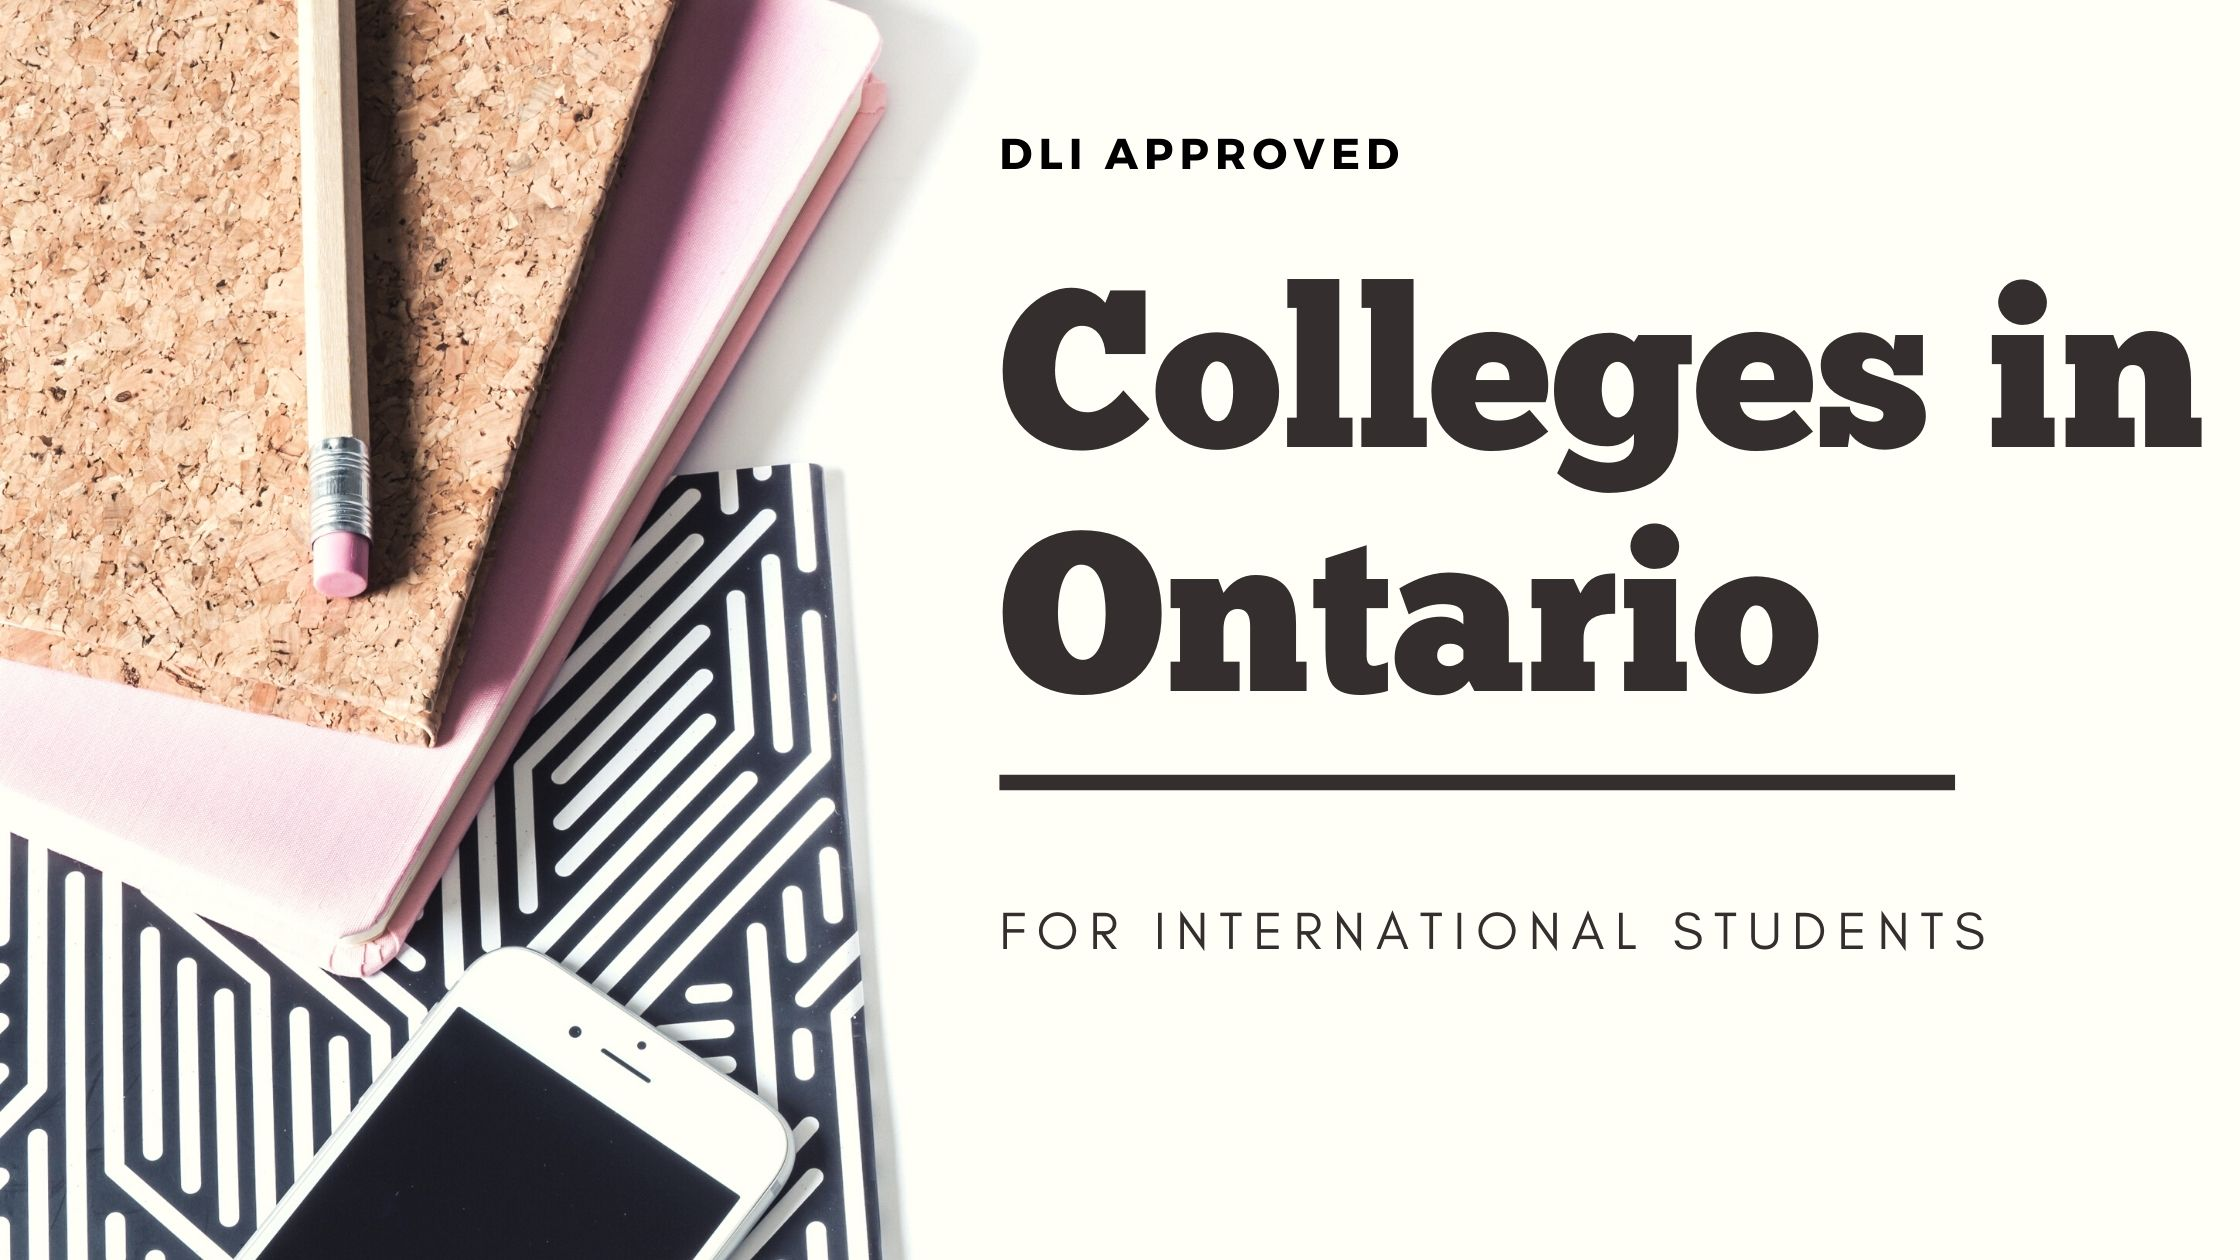 Cheap DLI Colleges in Ontario for international students in 2021